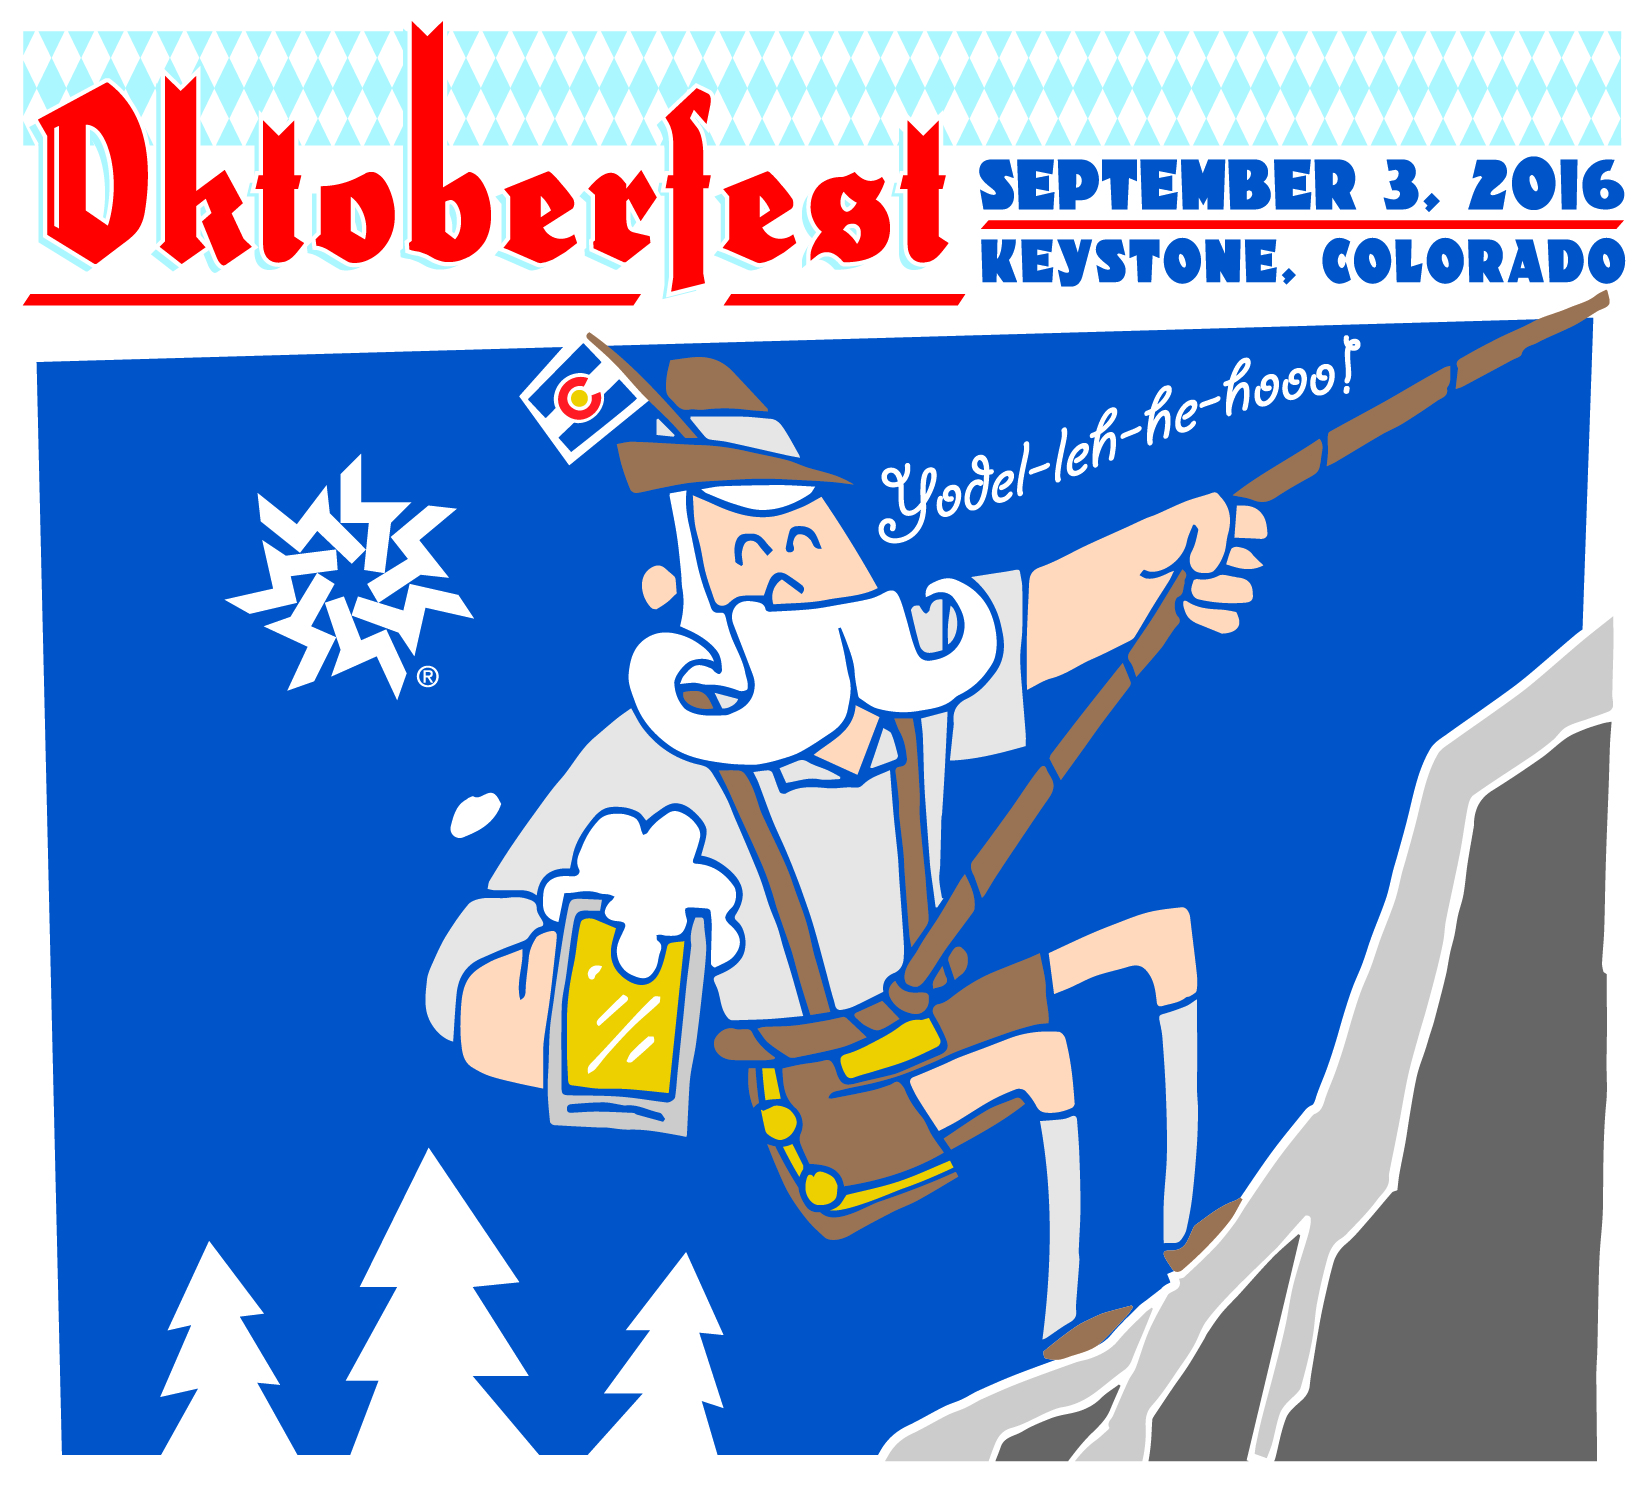 Keystone's Family Friendly Oktoberfest Returns Sept. 3 With A Lederhosen Running Race, Oompah Bands, Family Friendly Activities And Seasonal Craft Beer!